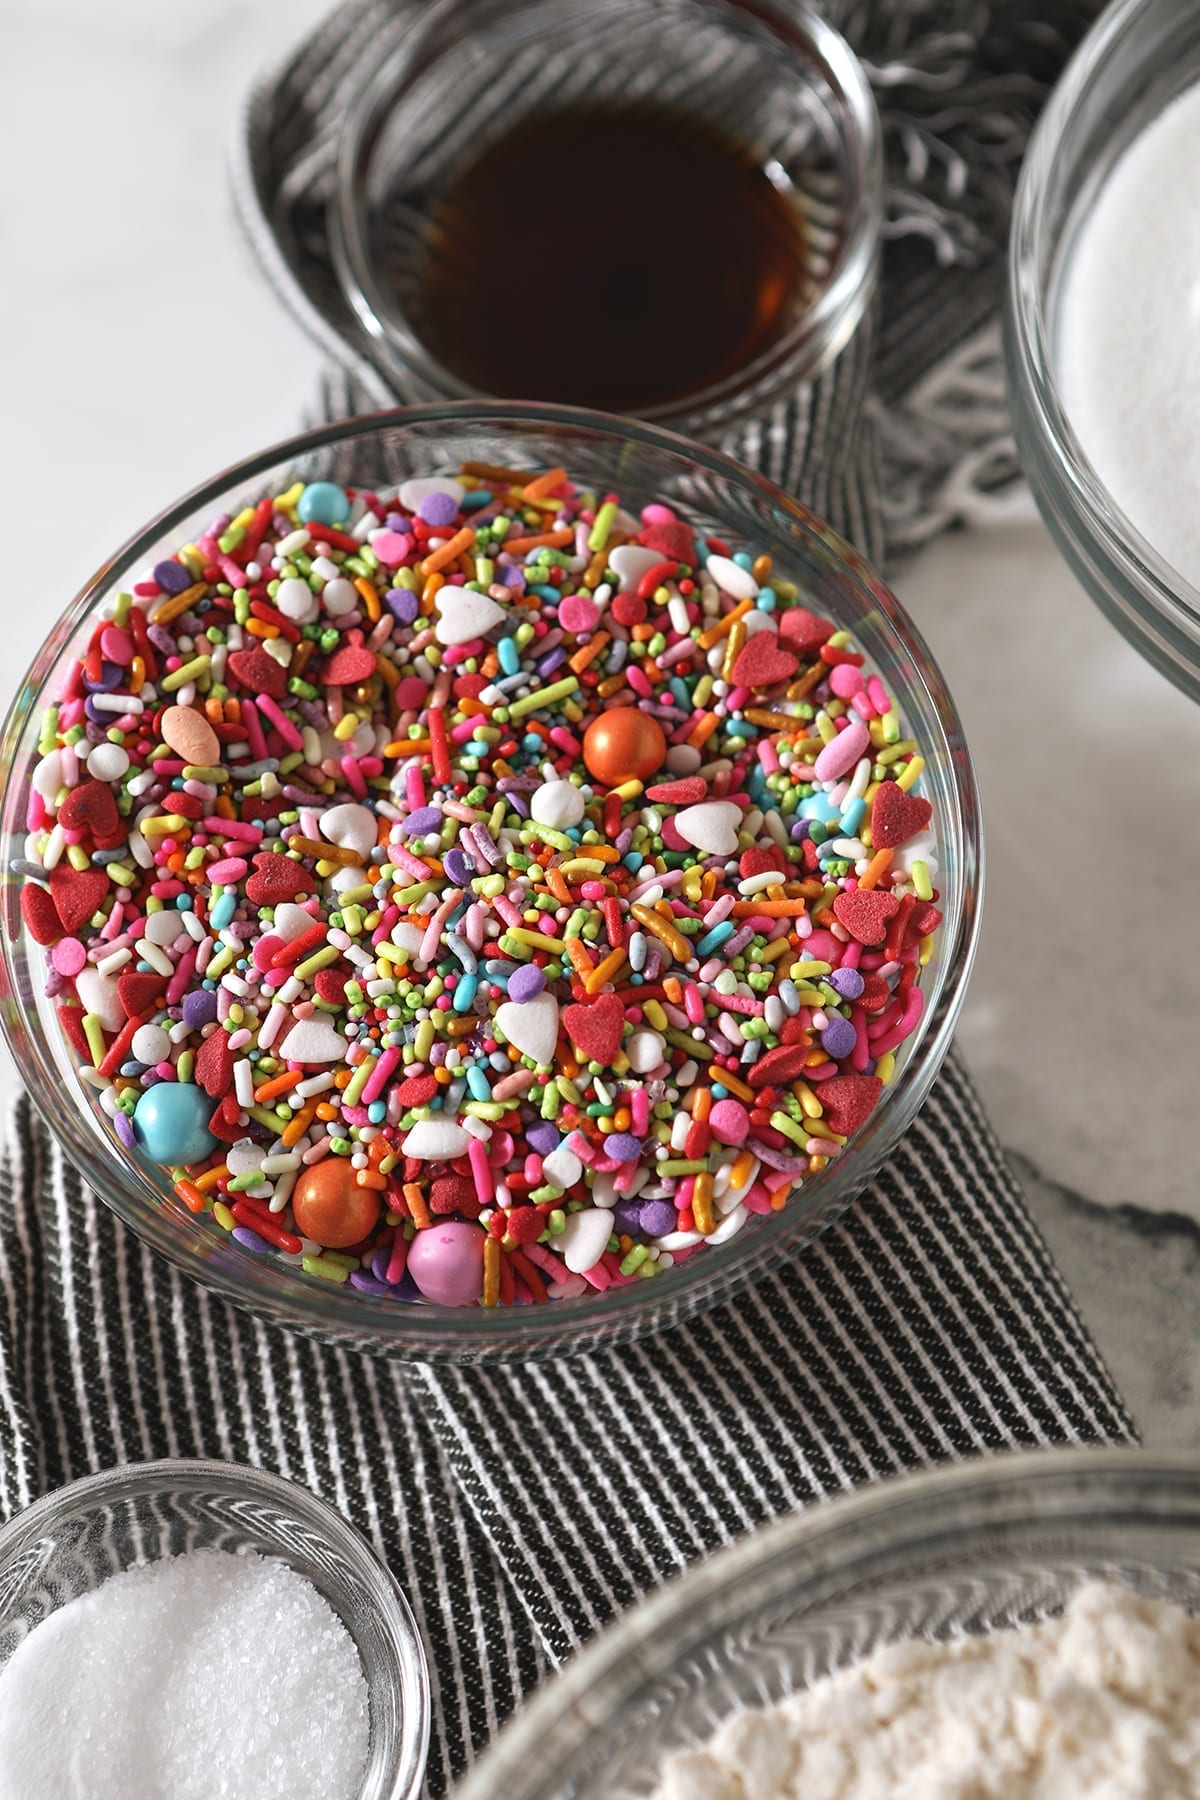 A bowl of colorful sprinkles, surrounded by other ingredients